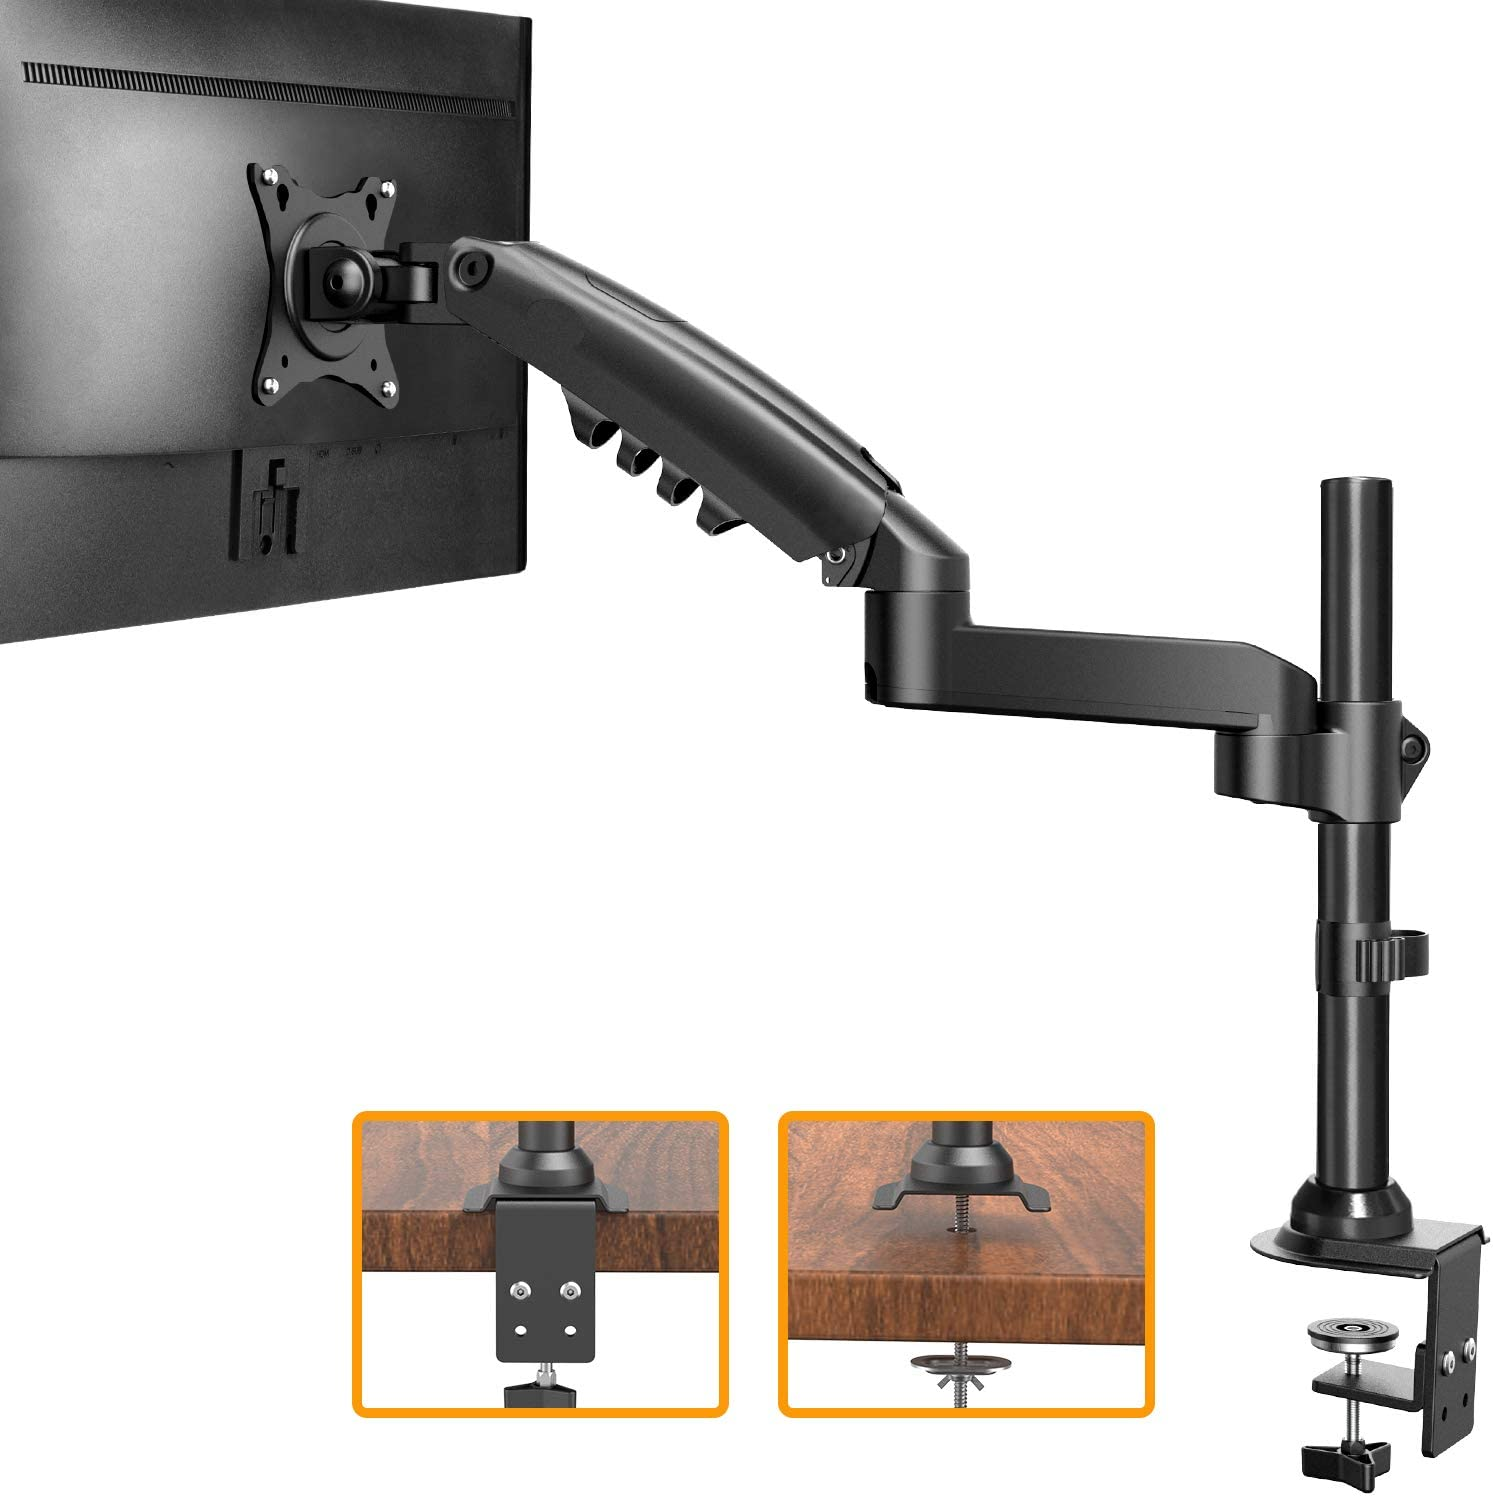 "ErGear 17""-34"" Single Monitor Desk Mount Stand Kit, Full Motion Gas Spring Arms with Clamp On/Grommet Mounting Base, Holds Computer Screen up to 19.84 lbs/Arm with 75/100mm VESA, Black"